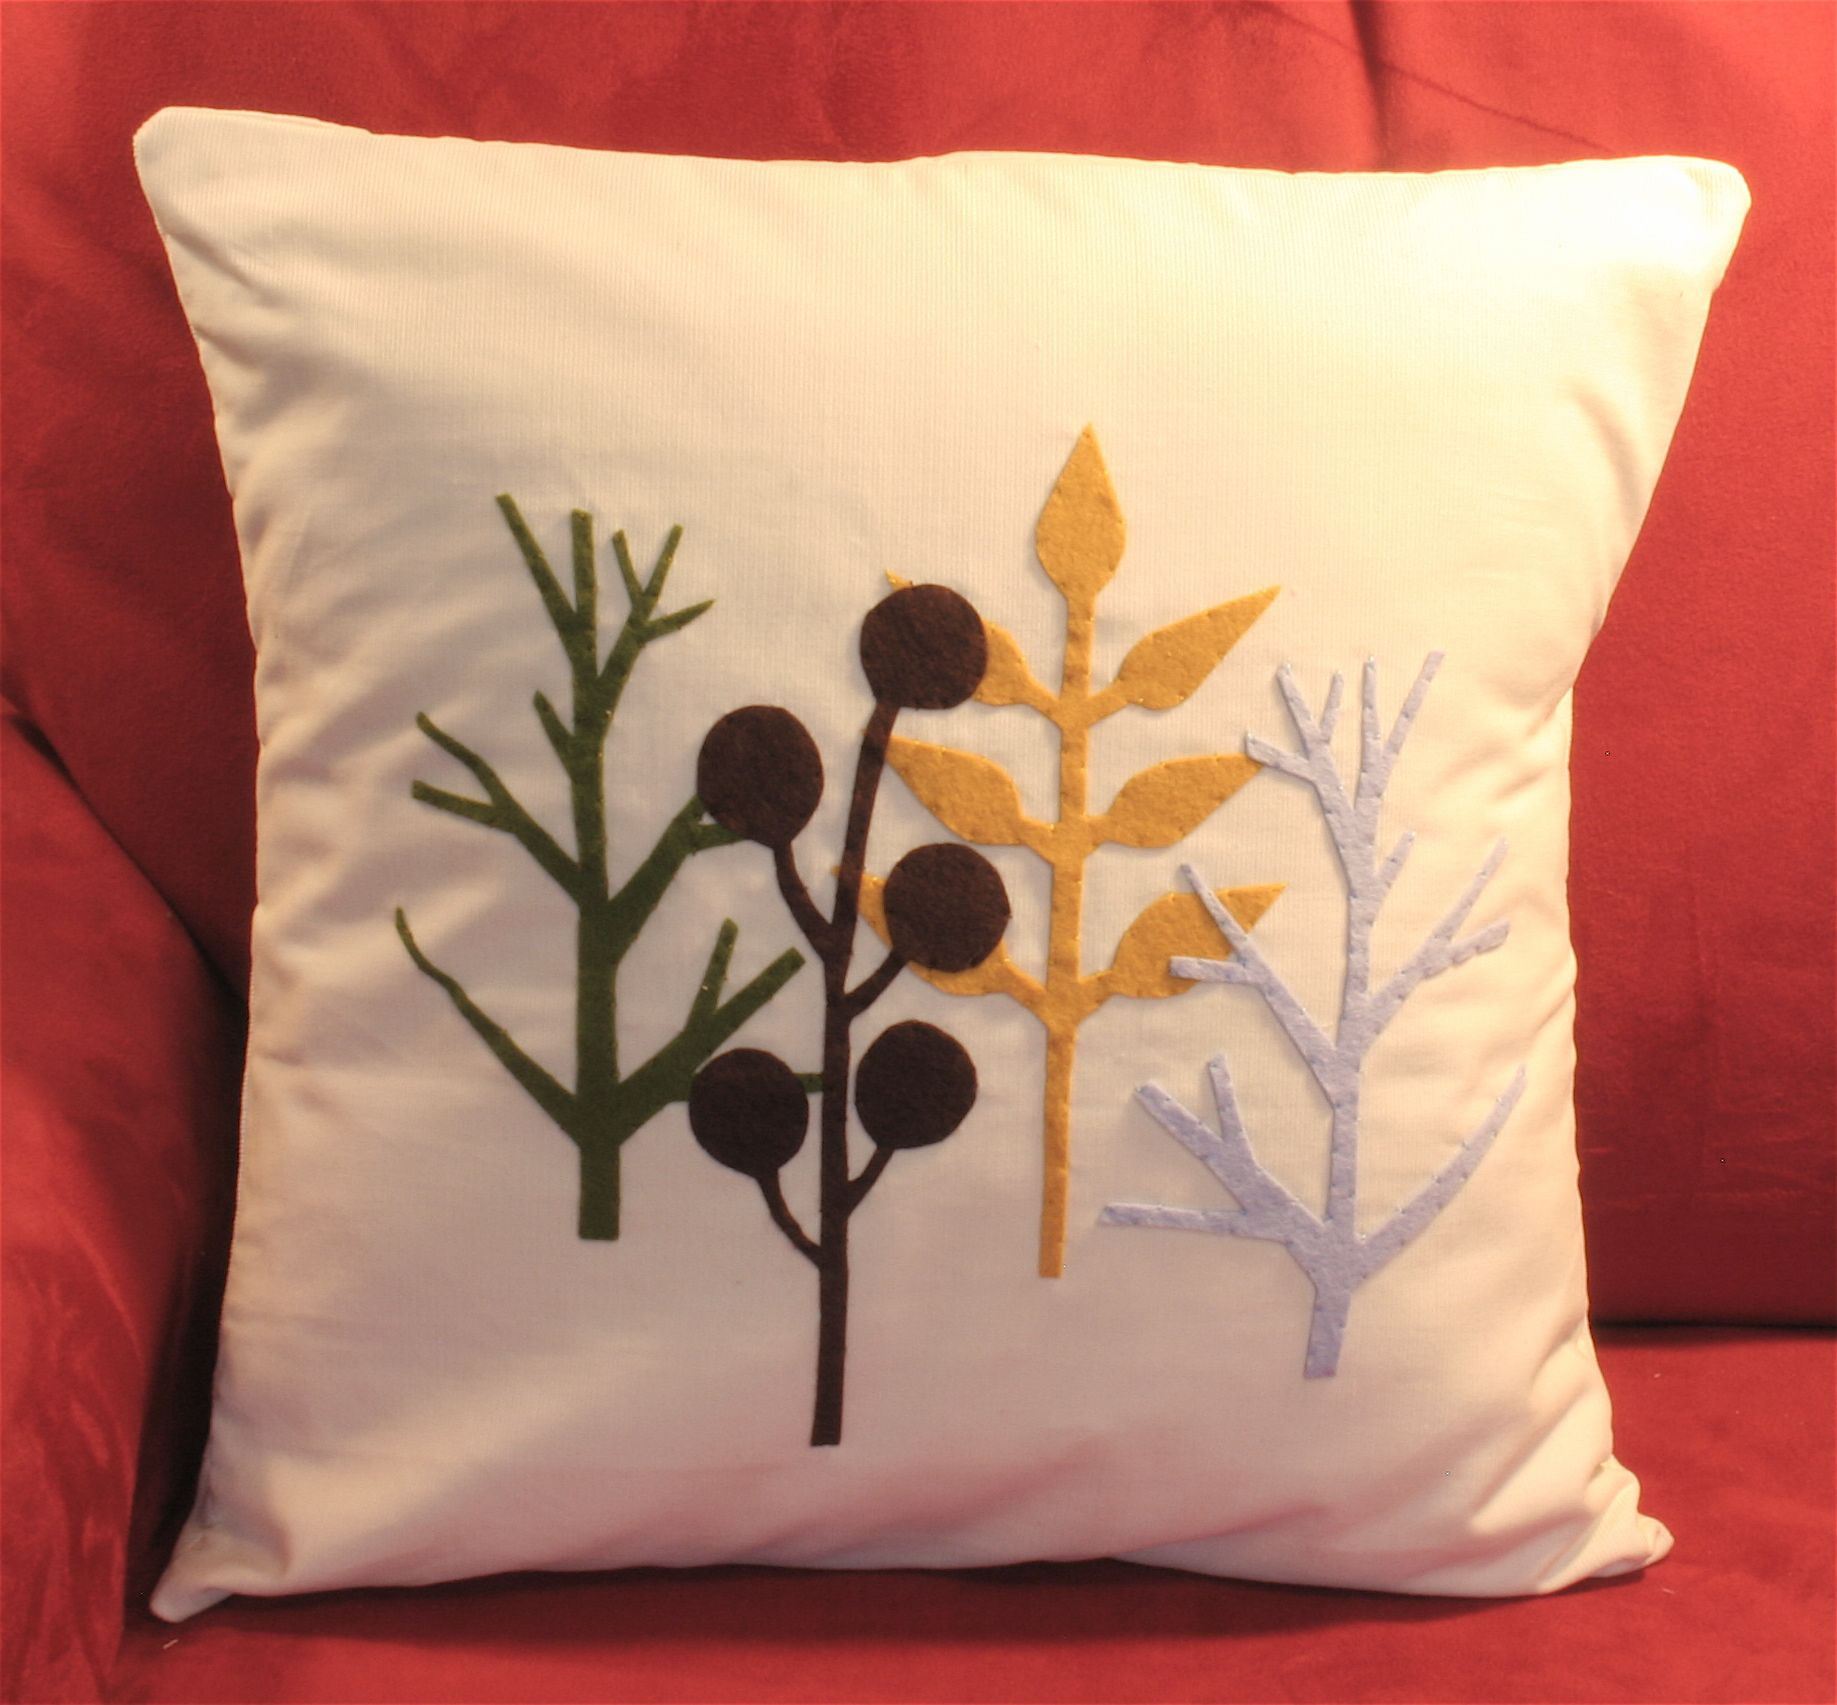 17 Best images about Embroidery Design Pillow on Pinterest   Embroidery   Green pillow covers and Linen pillows. 17 Best images about Embroidery Design Pillow on Pinterest